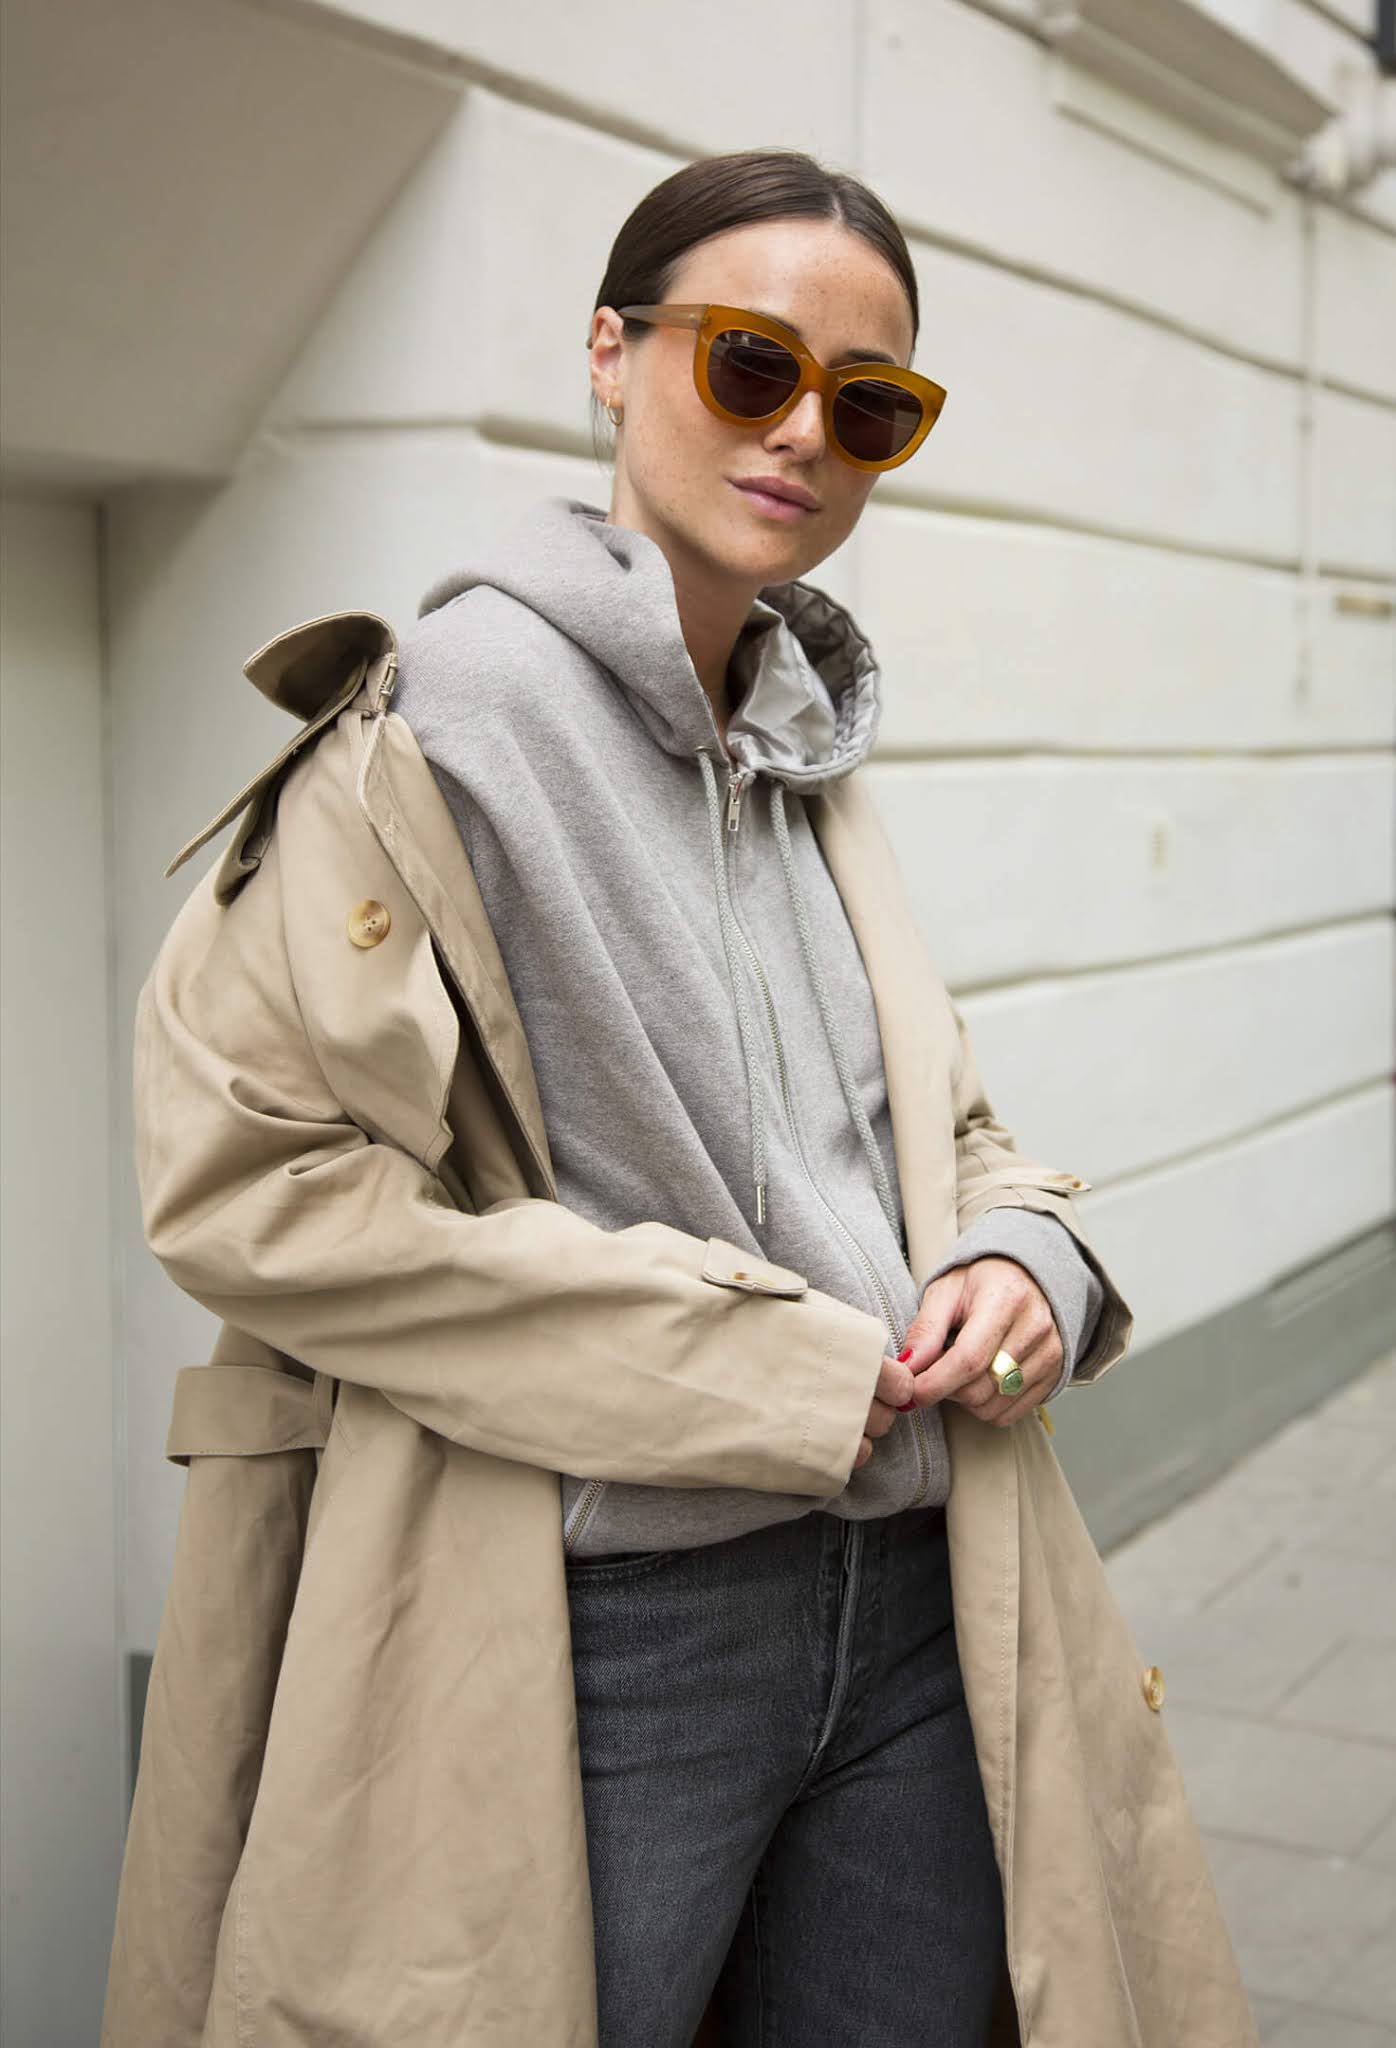 A Hoodie and Trench Coat Make for the Perfect Spring Outfit Combo —Lena Lademann in a classic trench coat, gray hooded sweatershirt, and faded black jeans